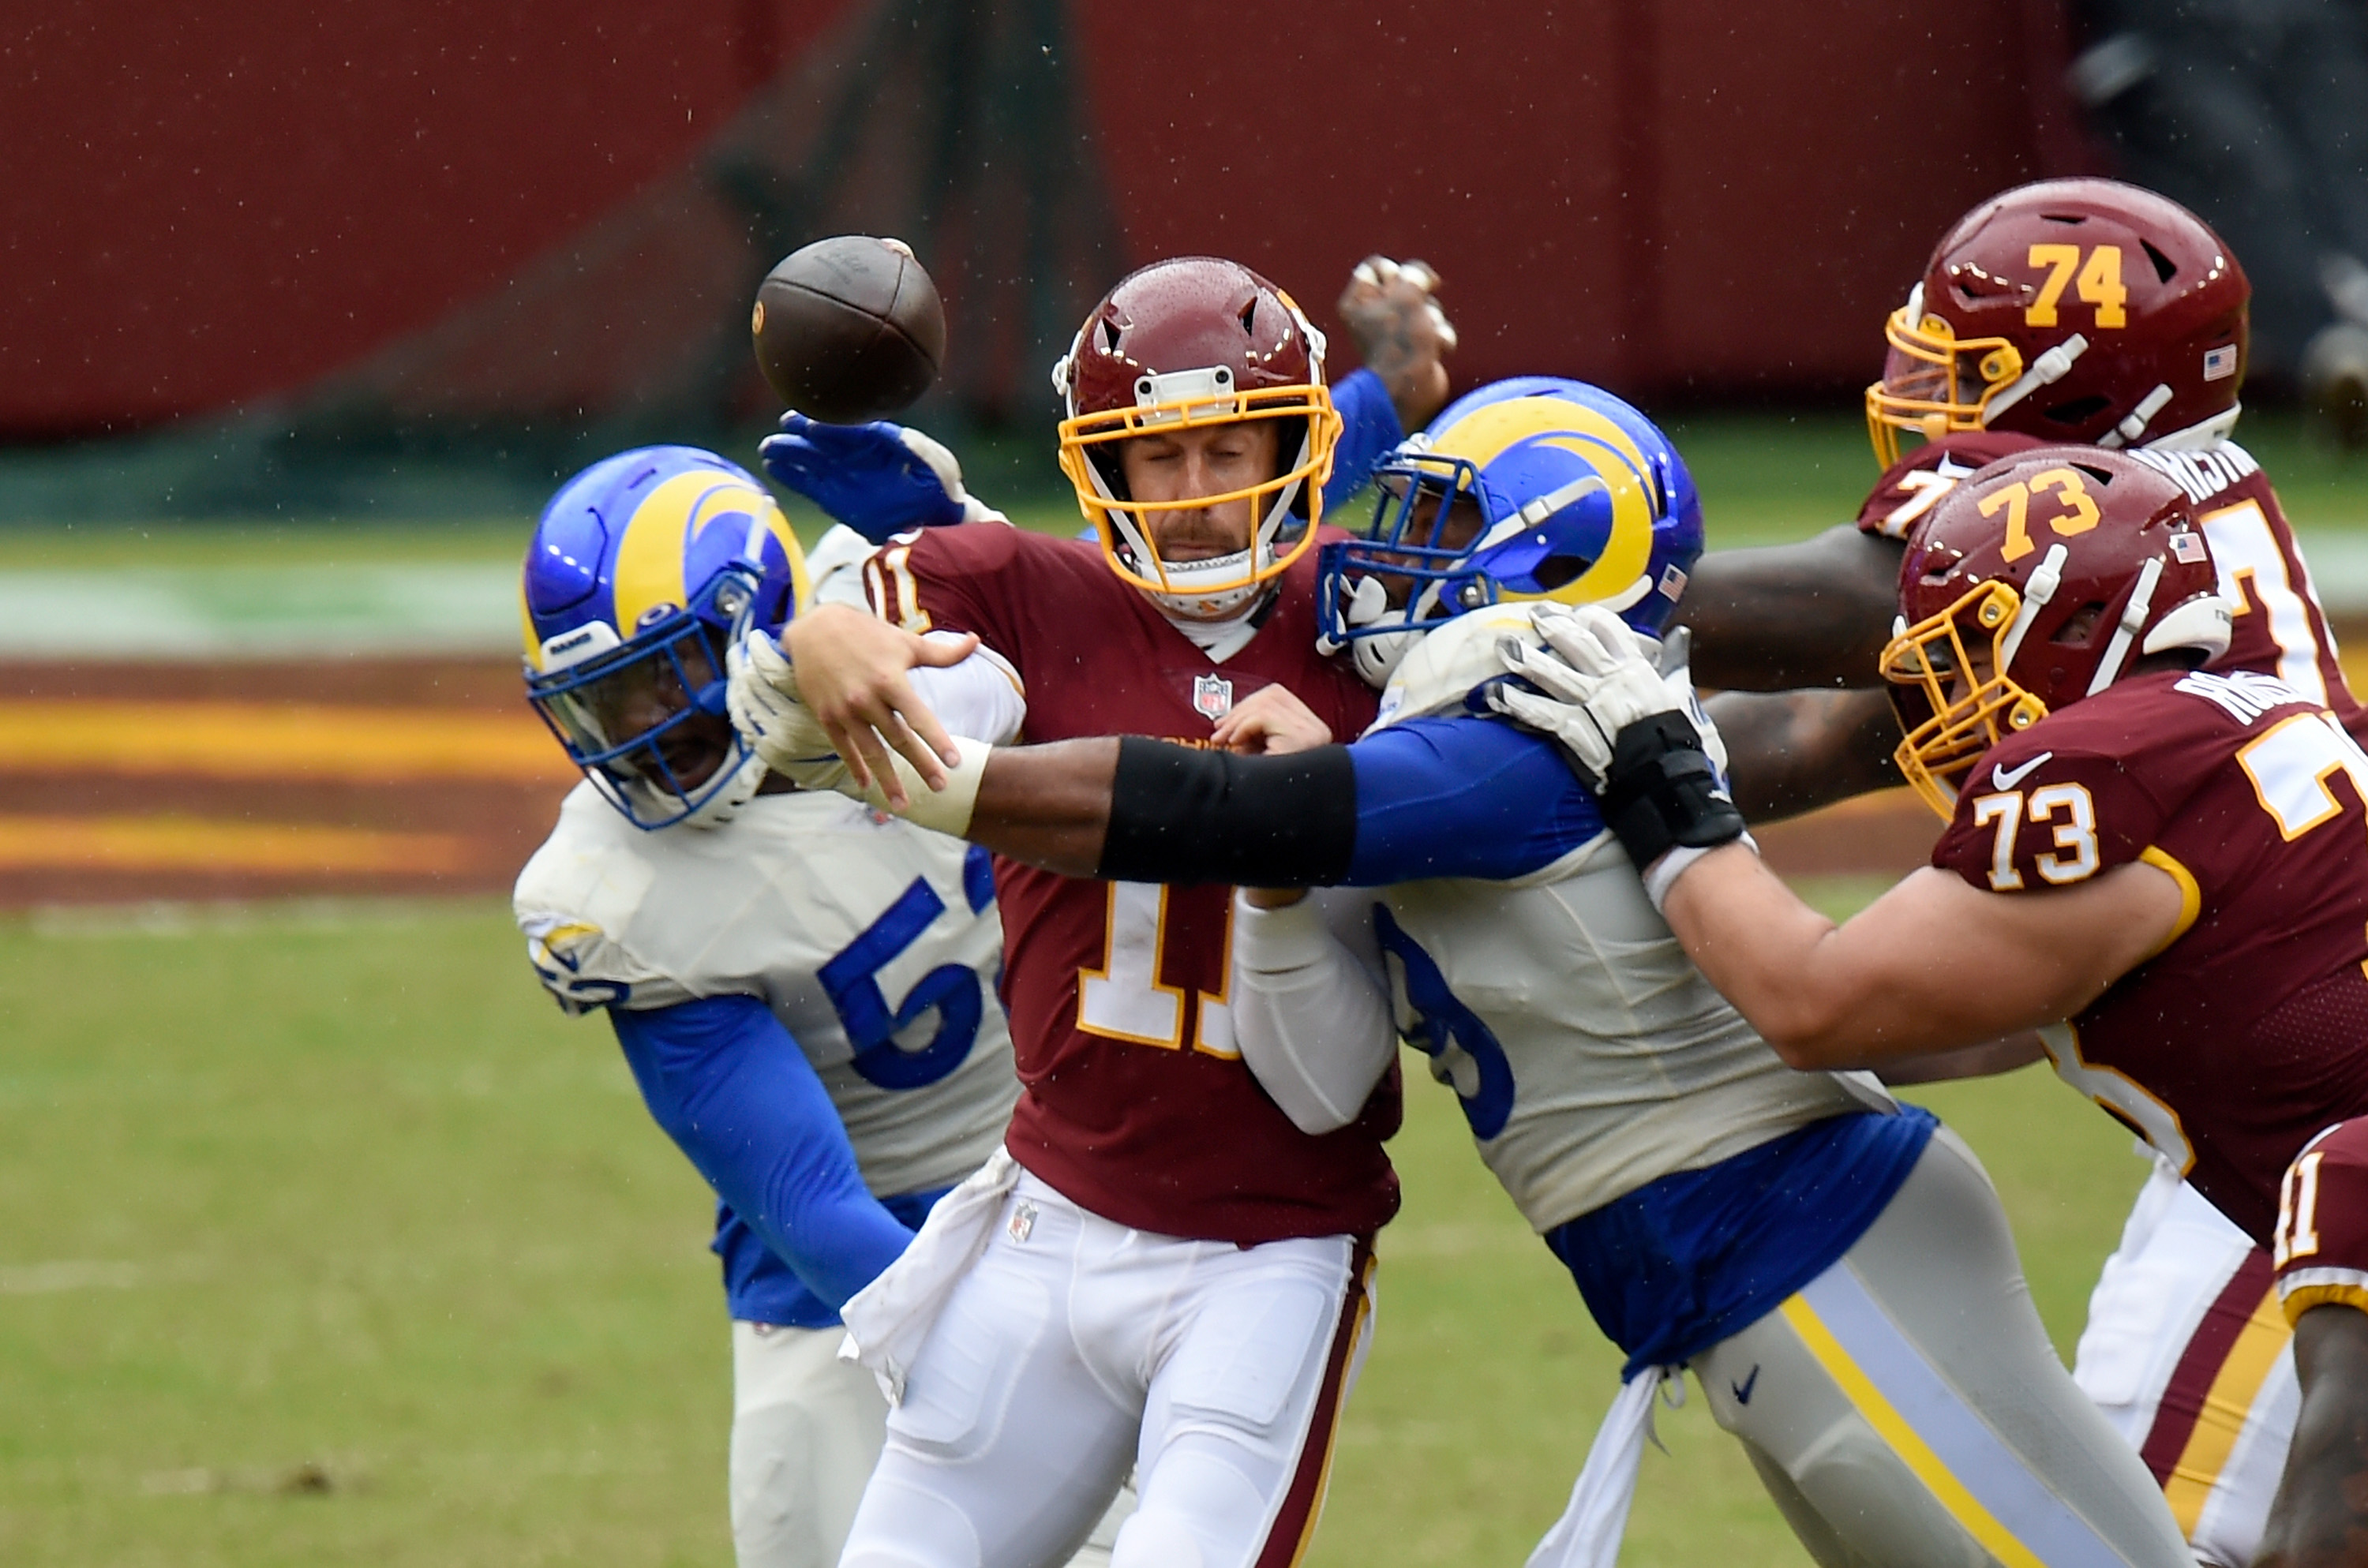 Alex Smith of the Washington Football Team is hit by Aaron Donald of the Rams